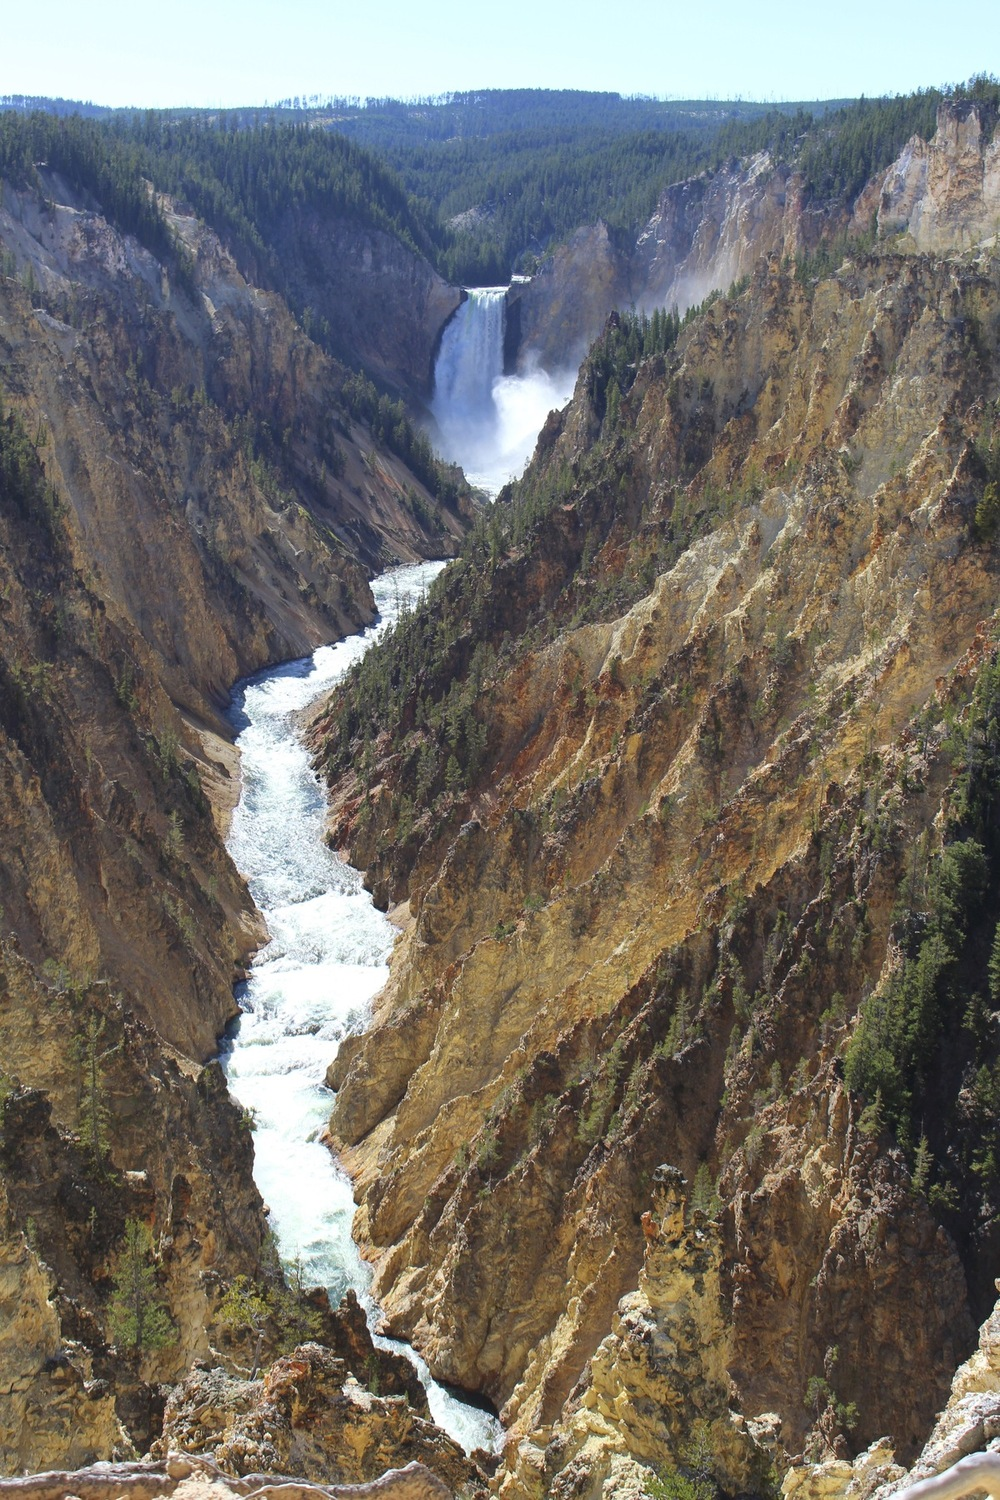 Genevieve French Photography - Grand Canyon of Yellowstone, Wyoming